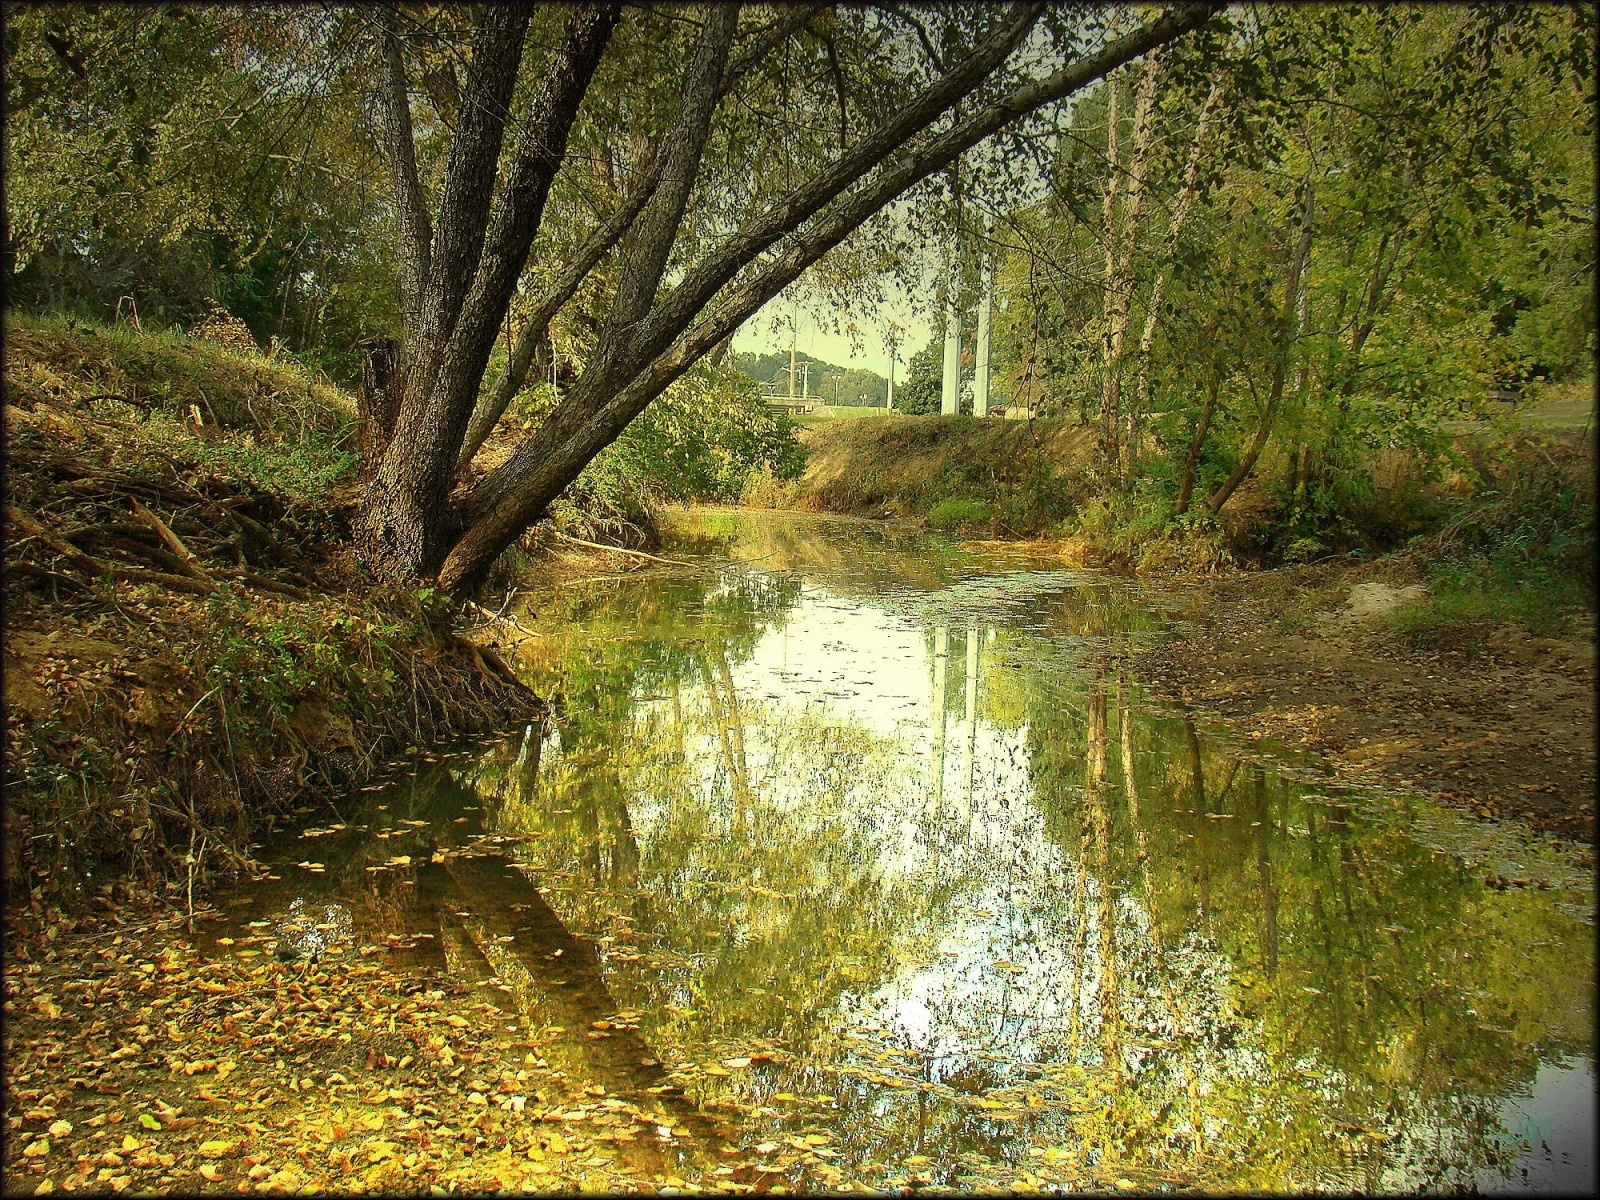 A View of Lanana Creek at the SFA University Arboretum